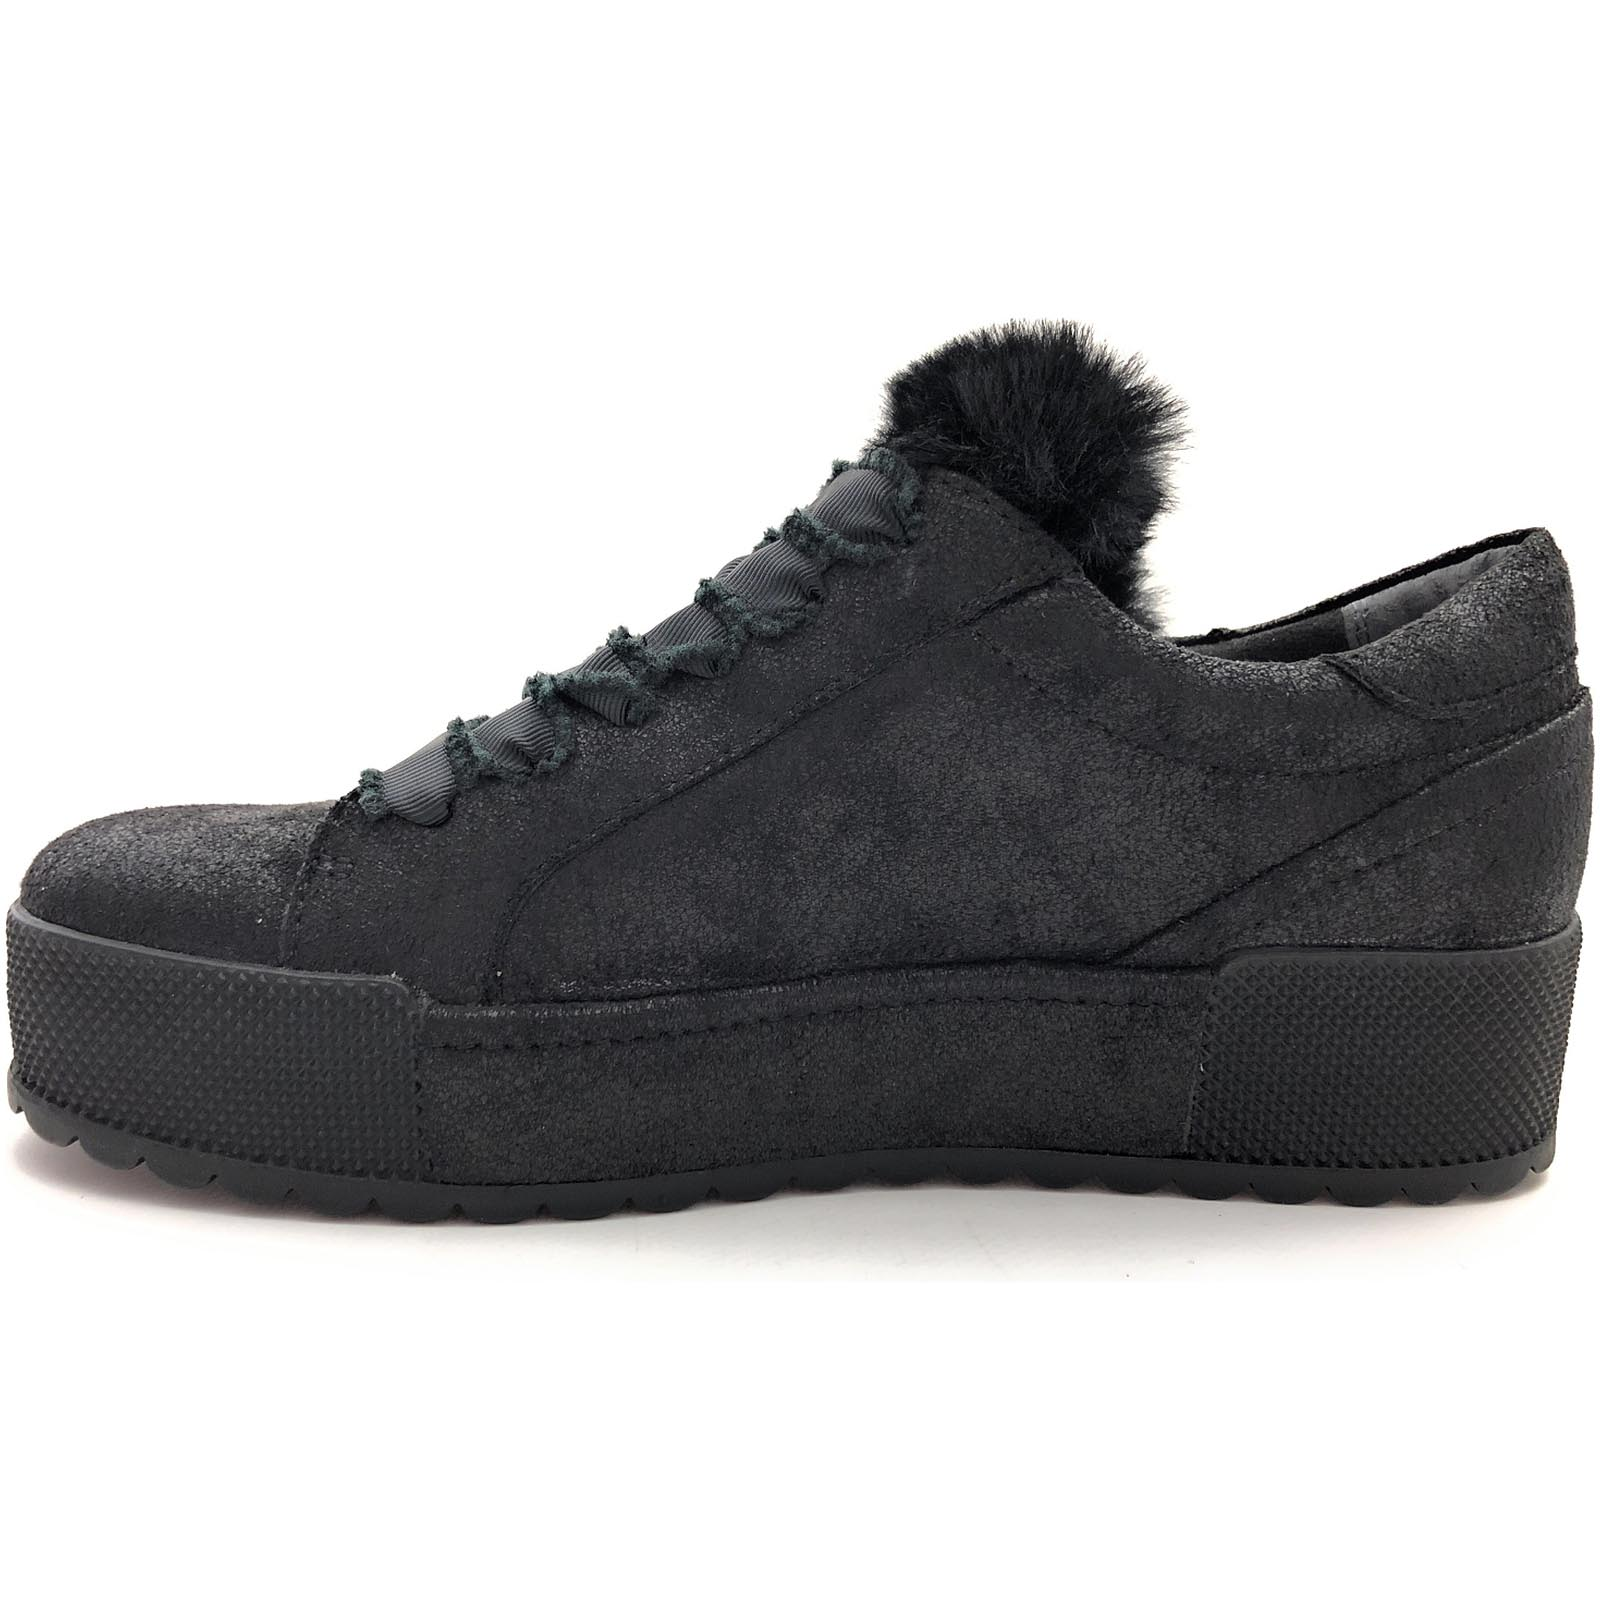 Tamaris baskets mode 23726.21 noir8024501_6